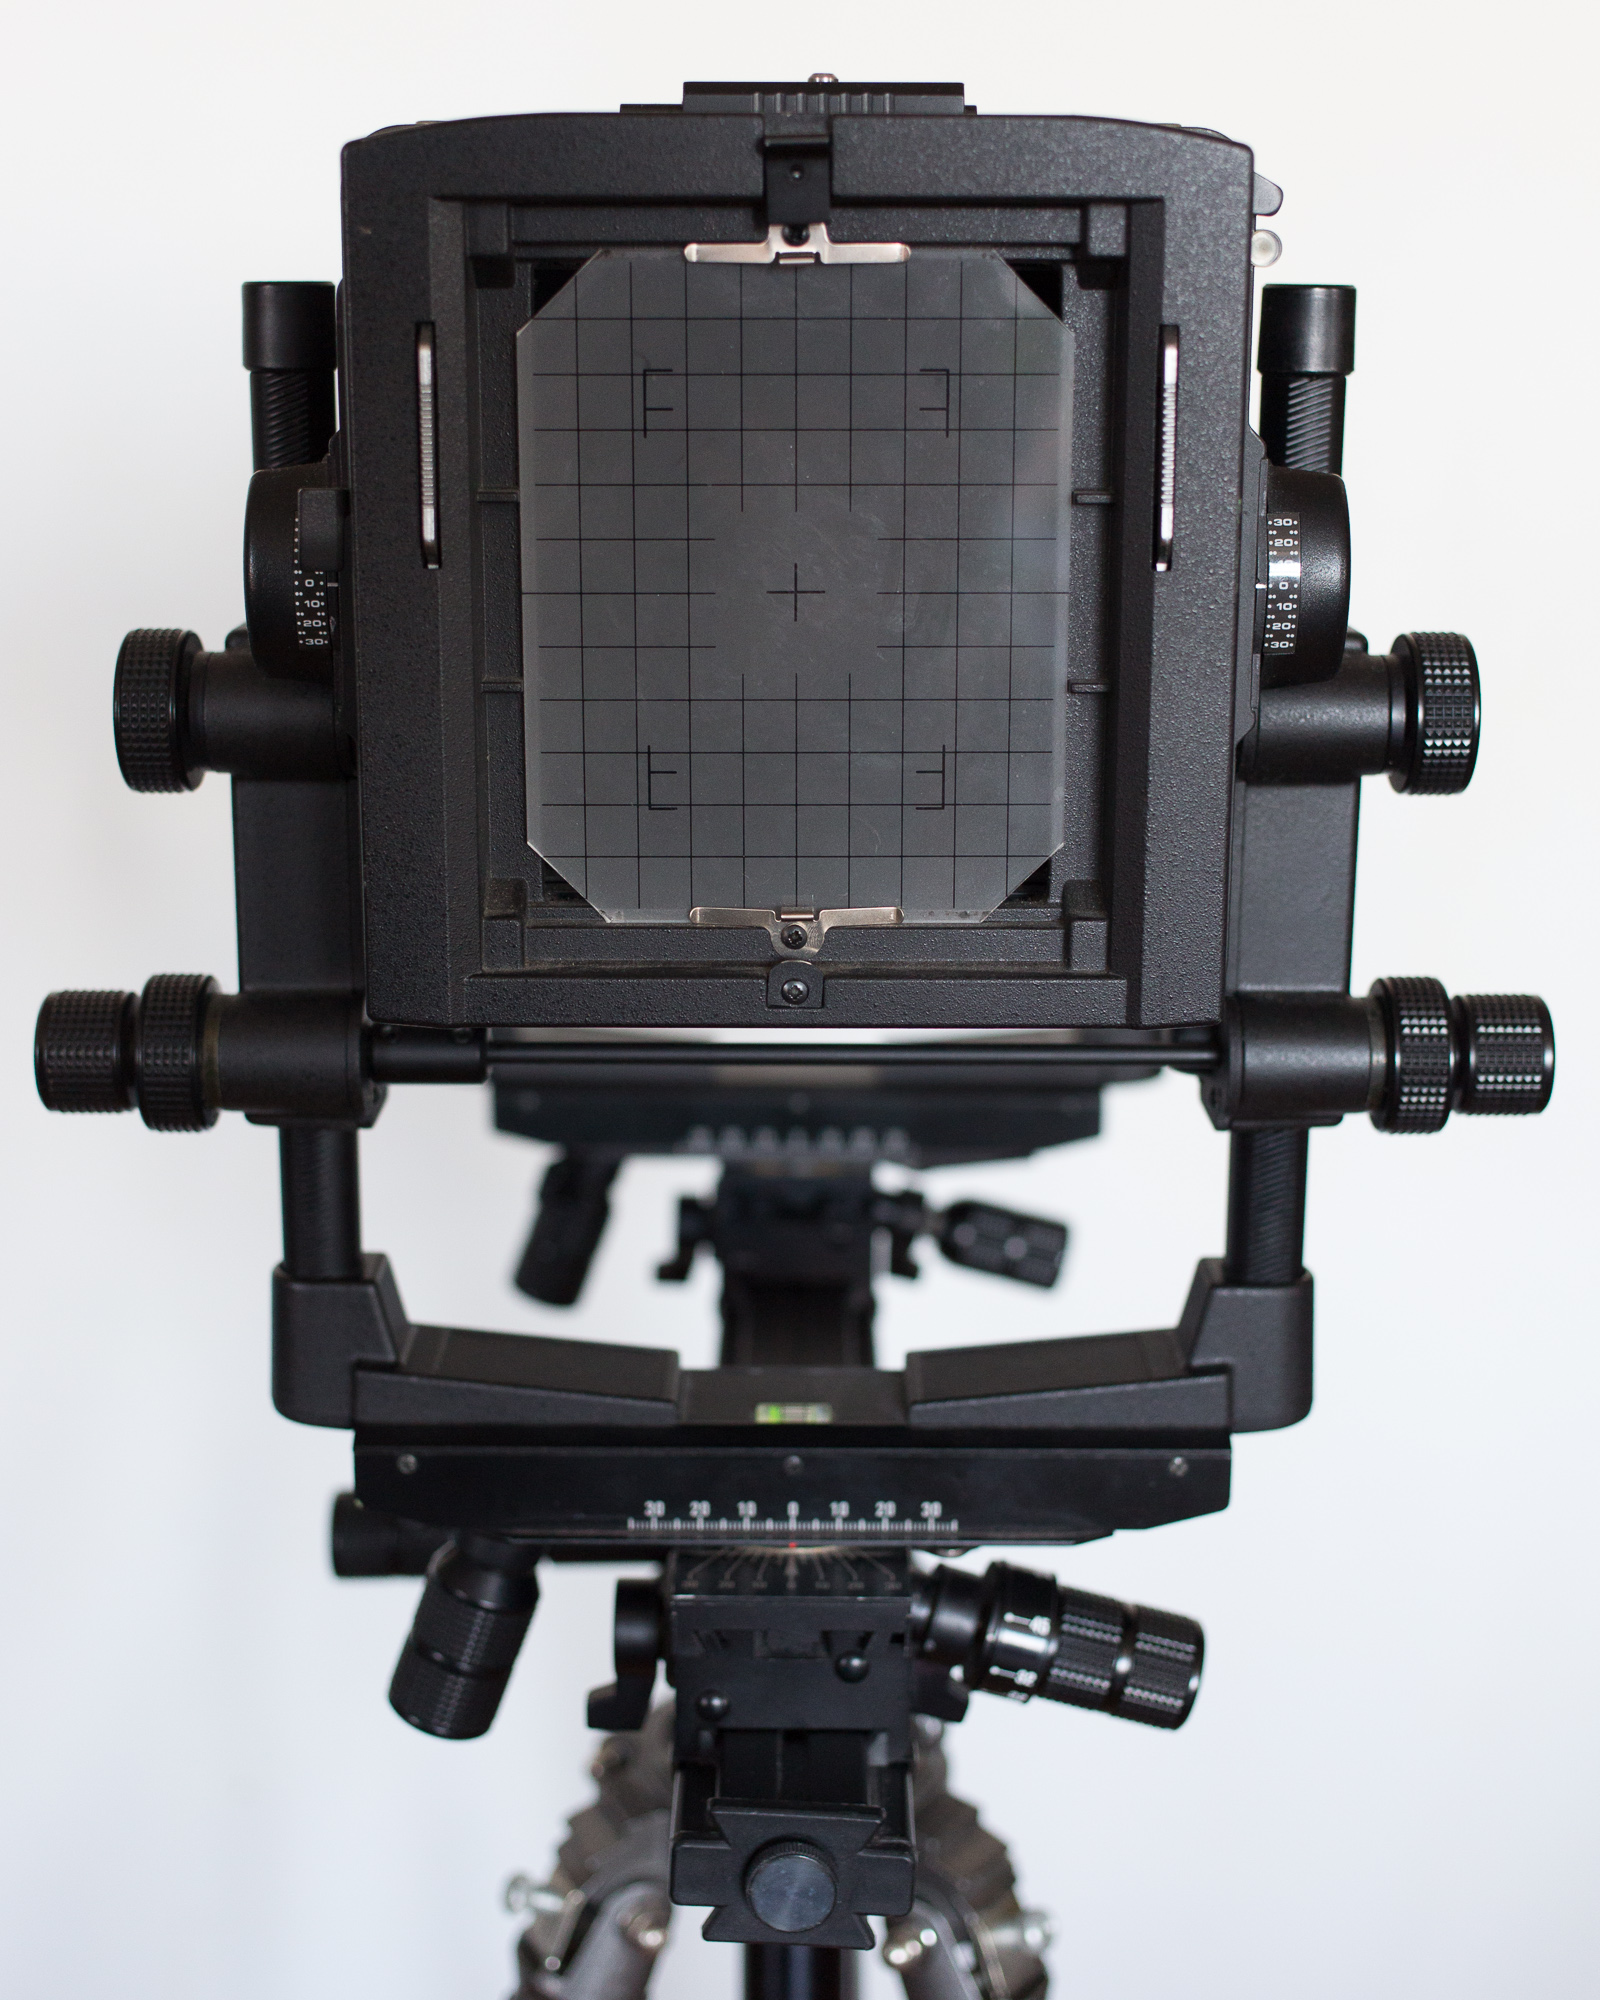 Ground Glass Focusing Screen and Rear of the Large Format Camera